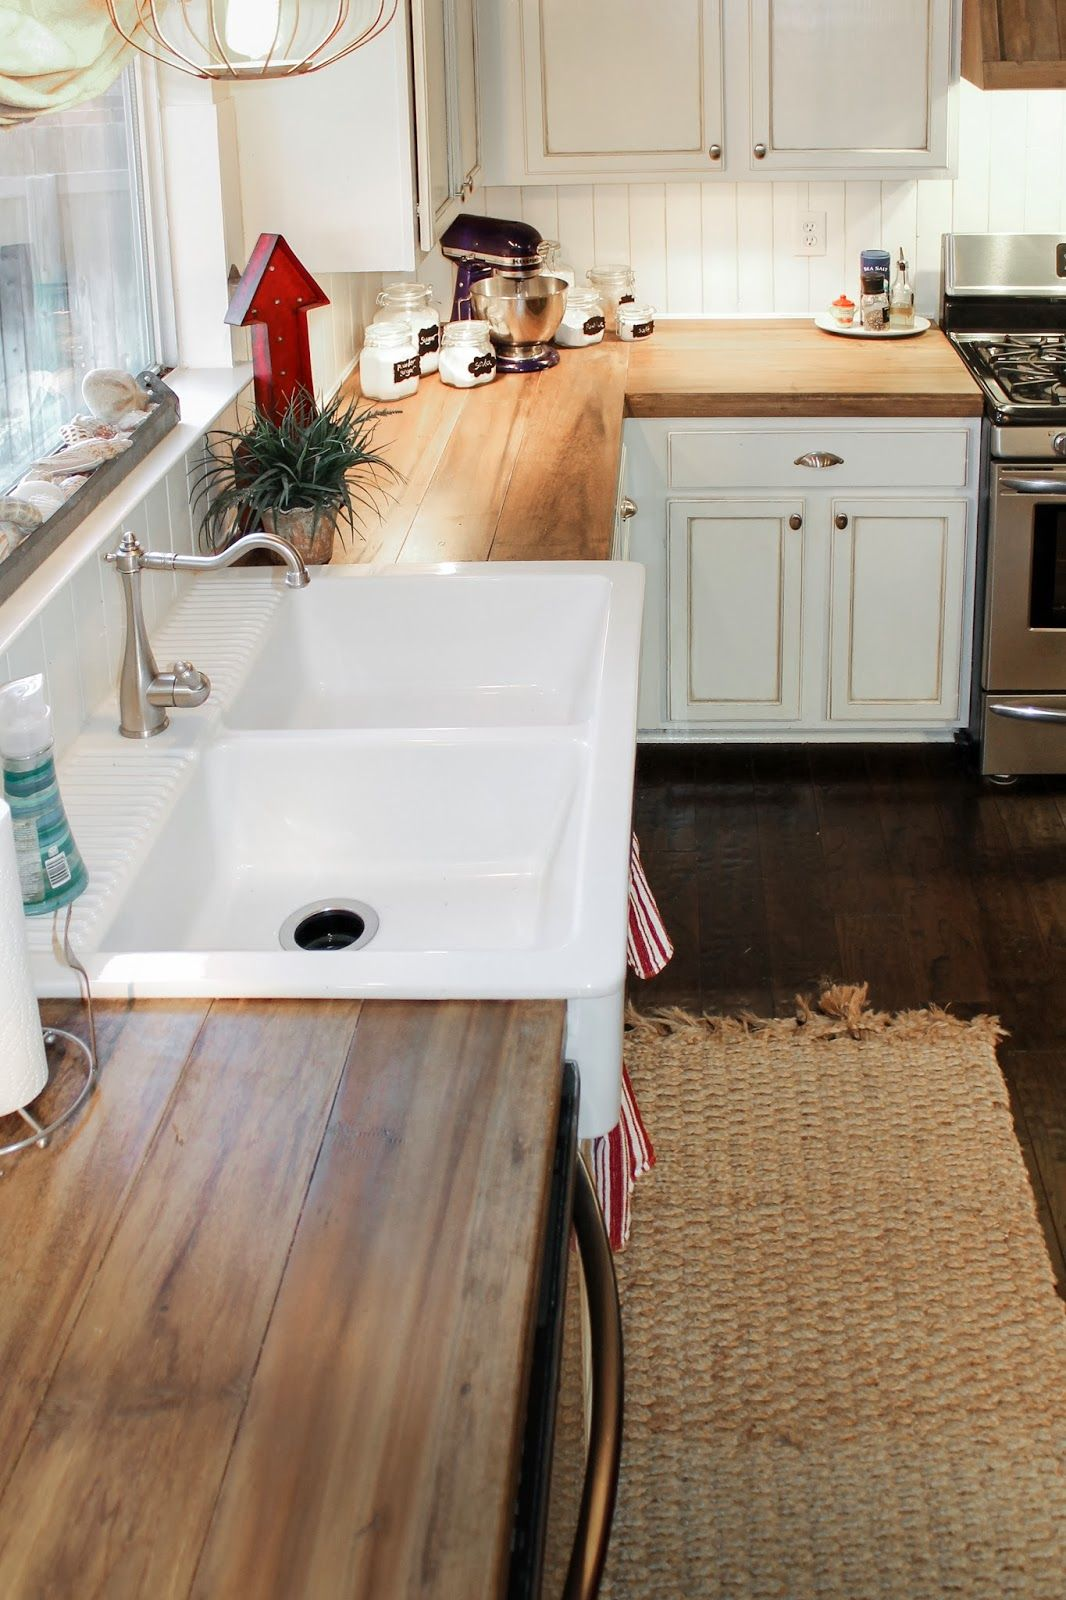 Get the look your want for countertops on a budget with one of these 10 inexpensive but amazing diy countertop ideas featured on remodelaholic com